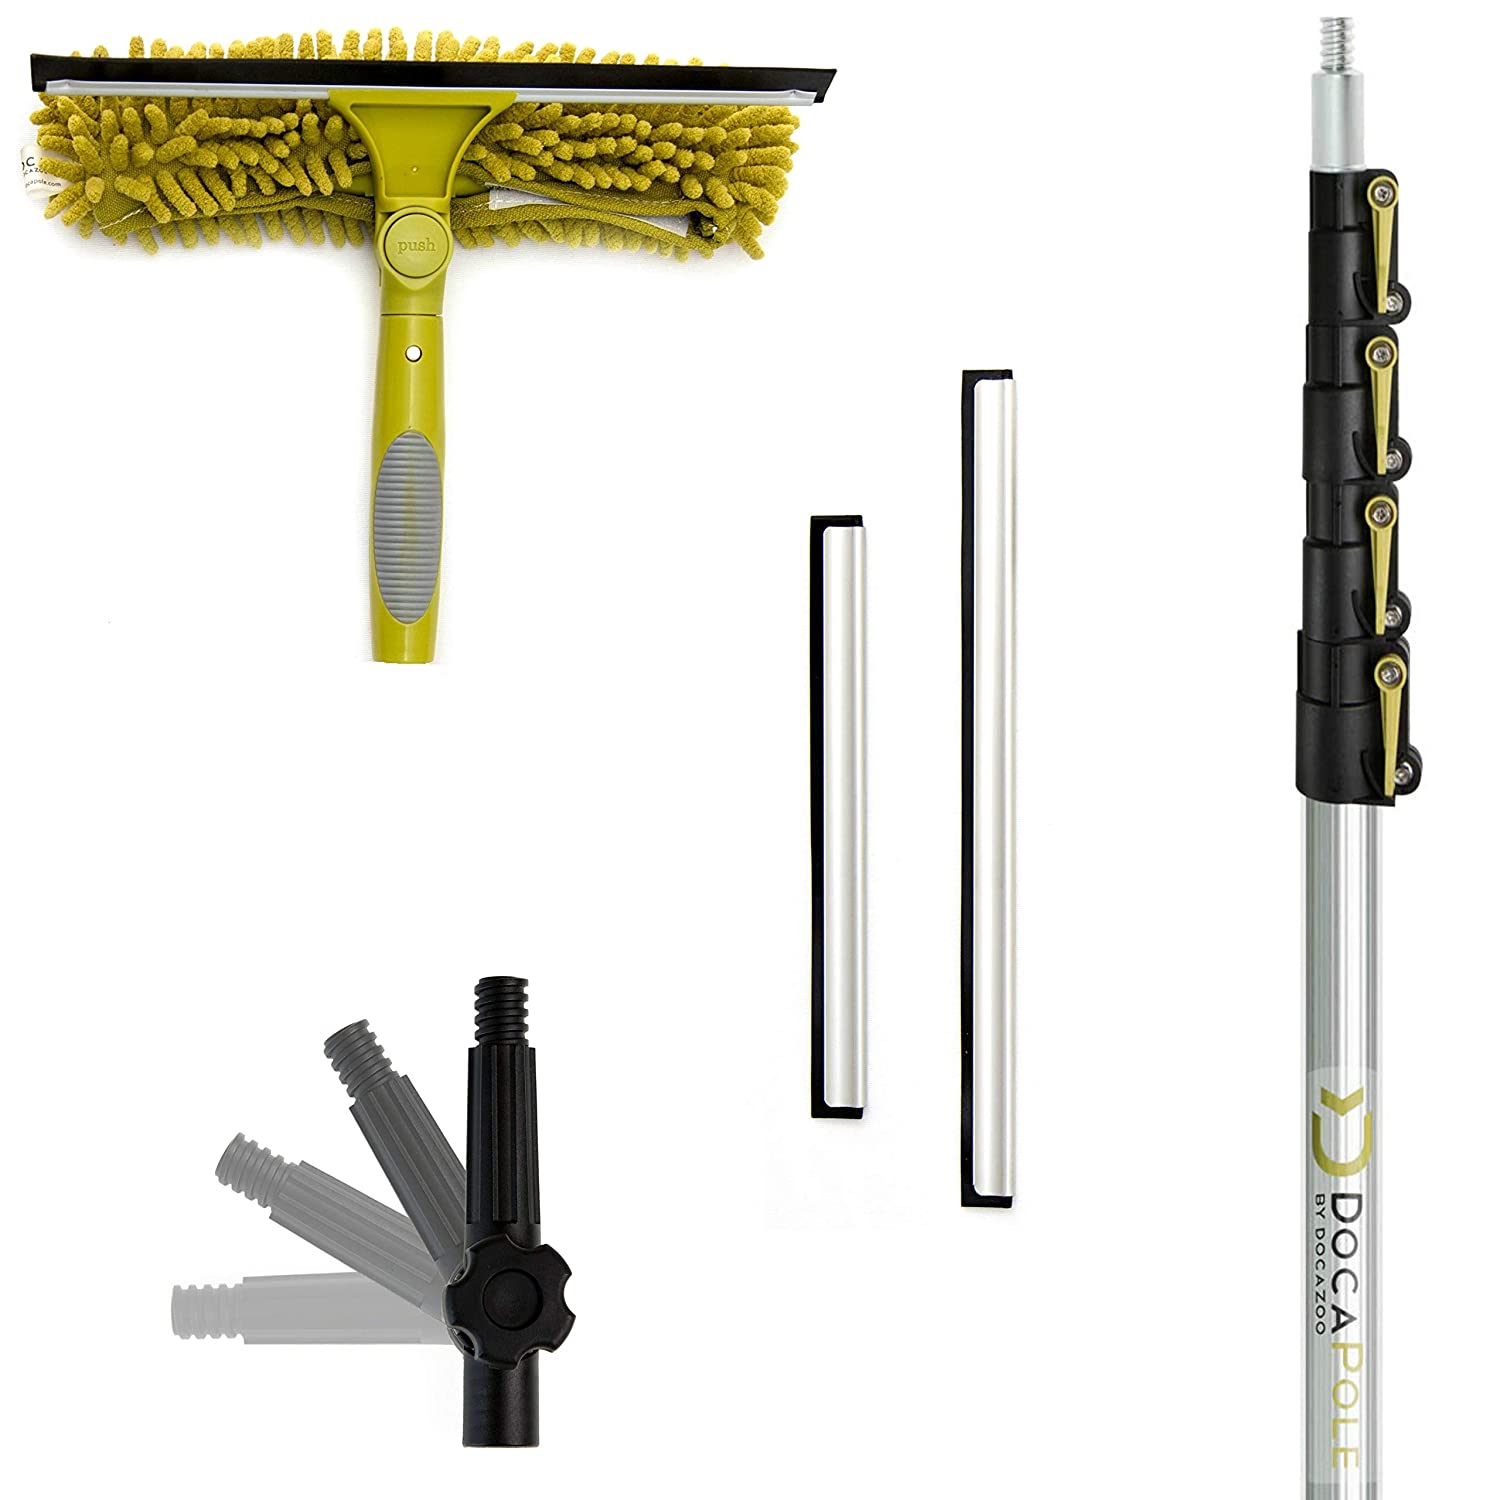 DocaPole 5-12 Foot Extension Pole + Squeegee & Window Washer Combo // Telescopic Pole for Window Cleaning // Includes 3 Sizes of Squeegee Blades // Extension Pole for Cleaning Windows